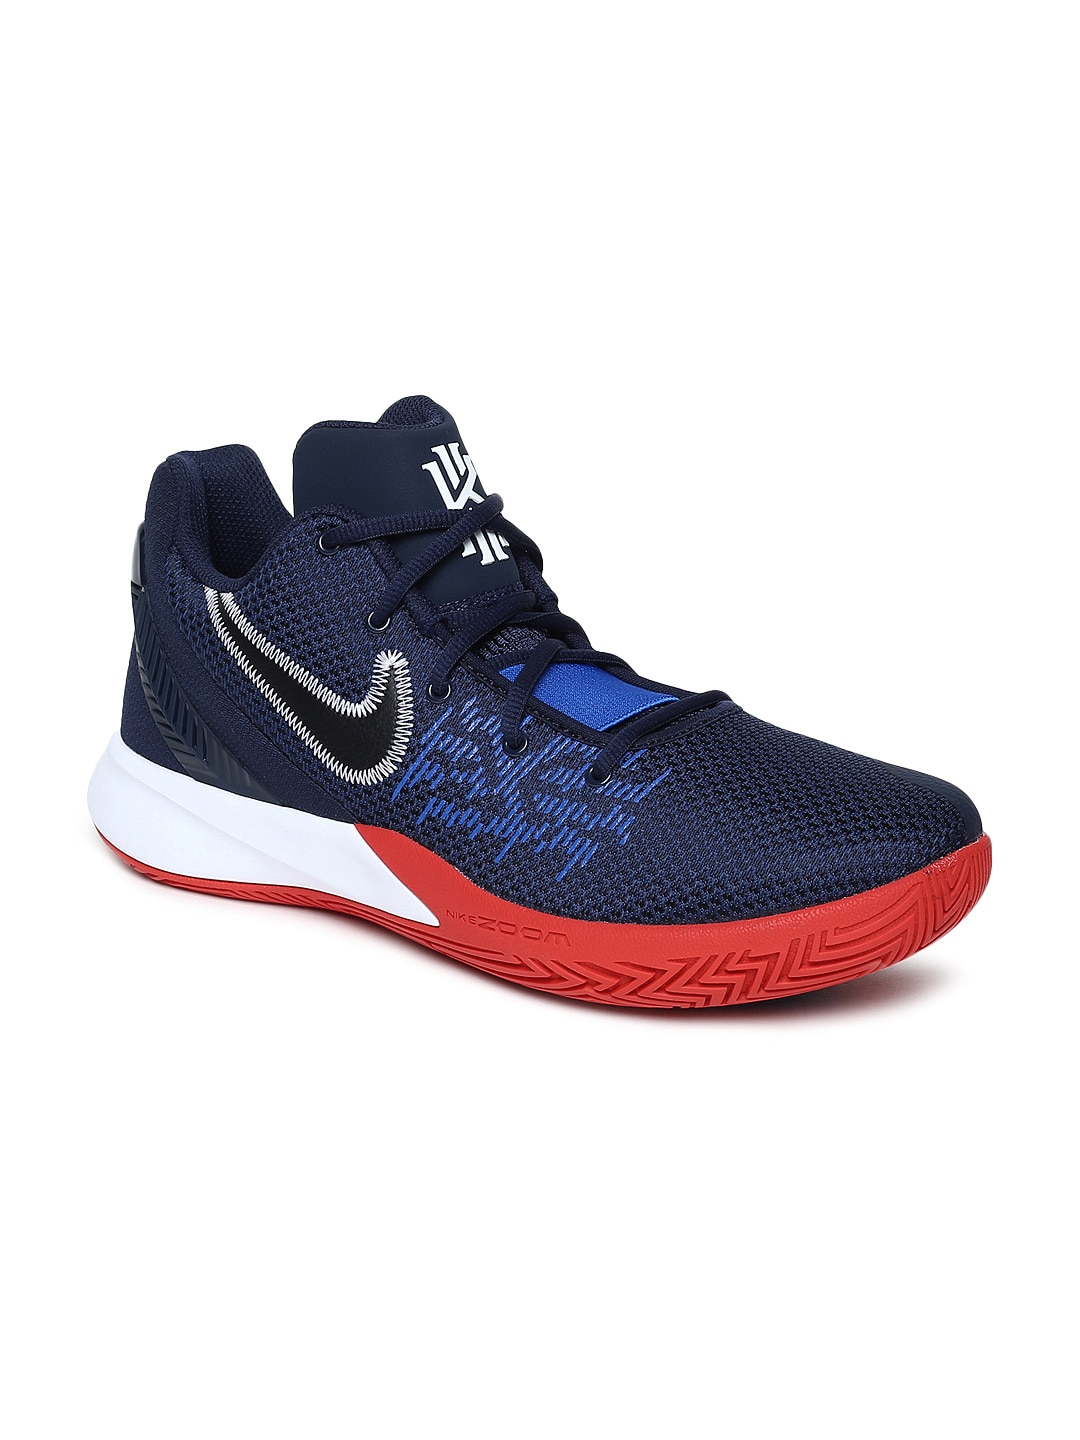 48fa3bd9a6a1 Nike Basketball Shoes